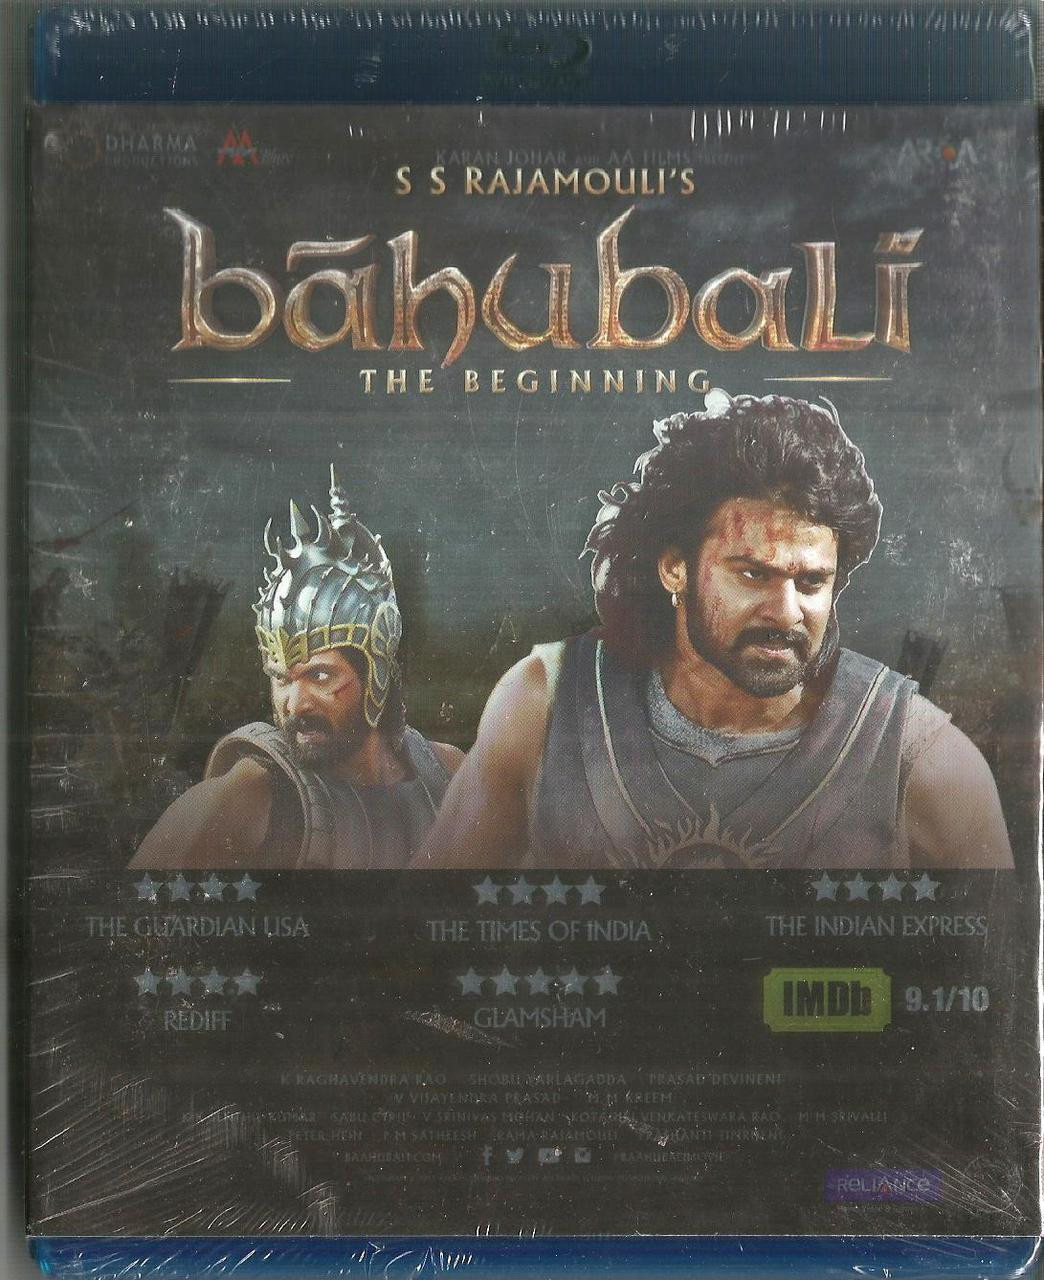 bahubali subtitle english part 2